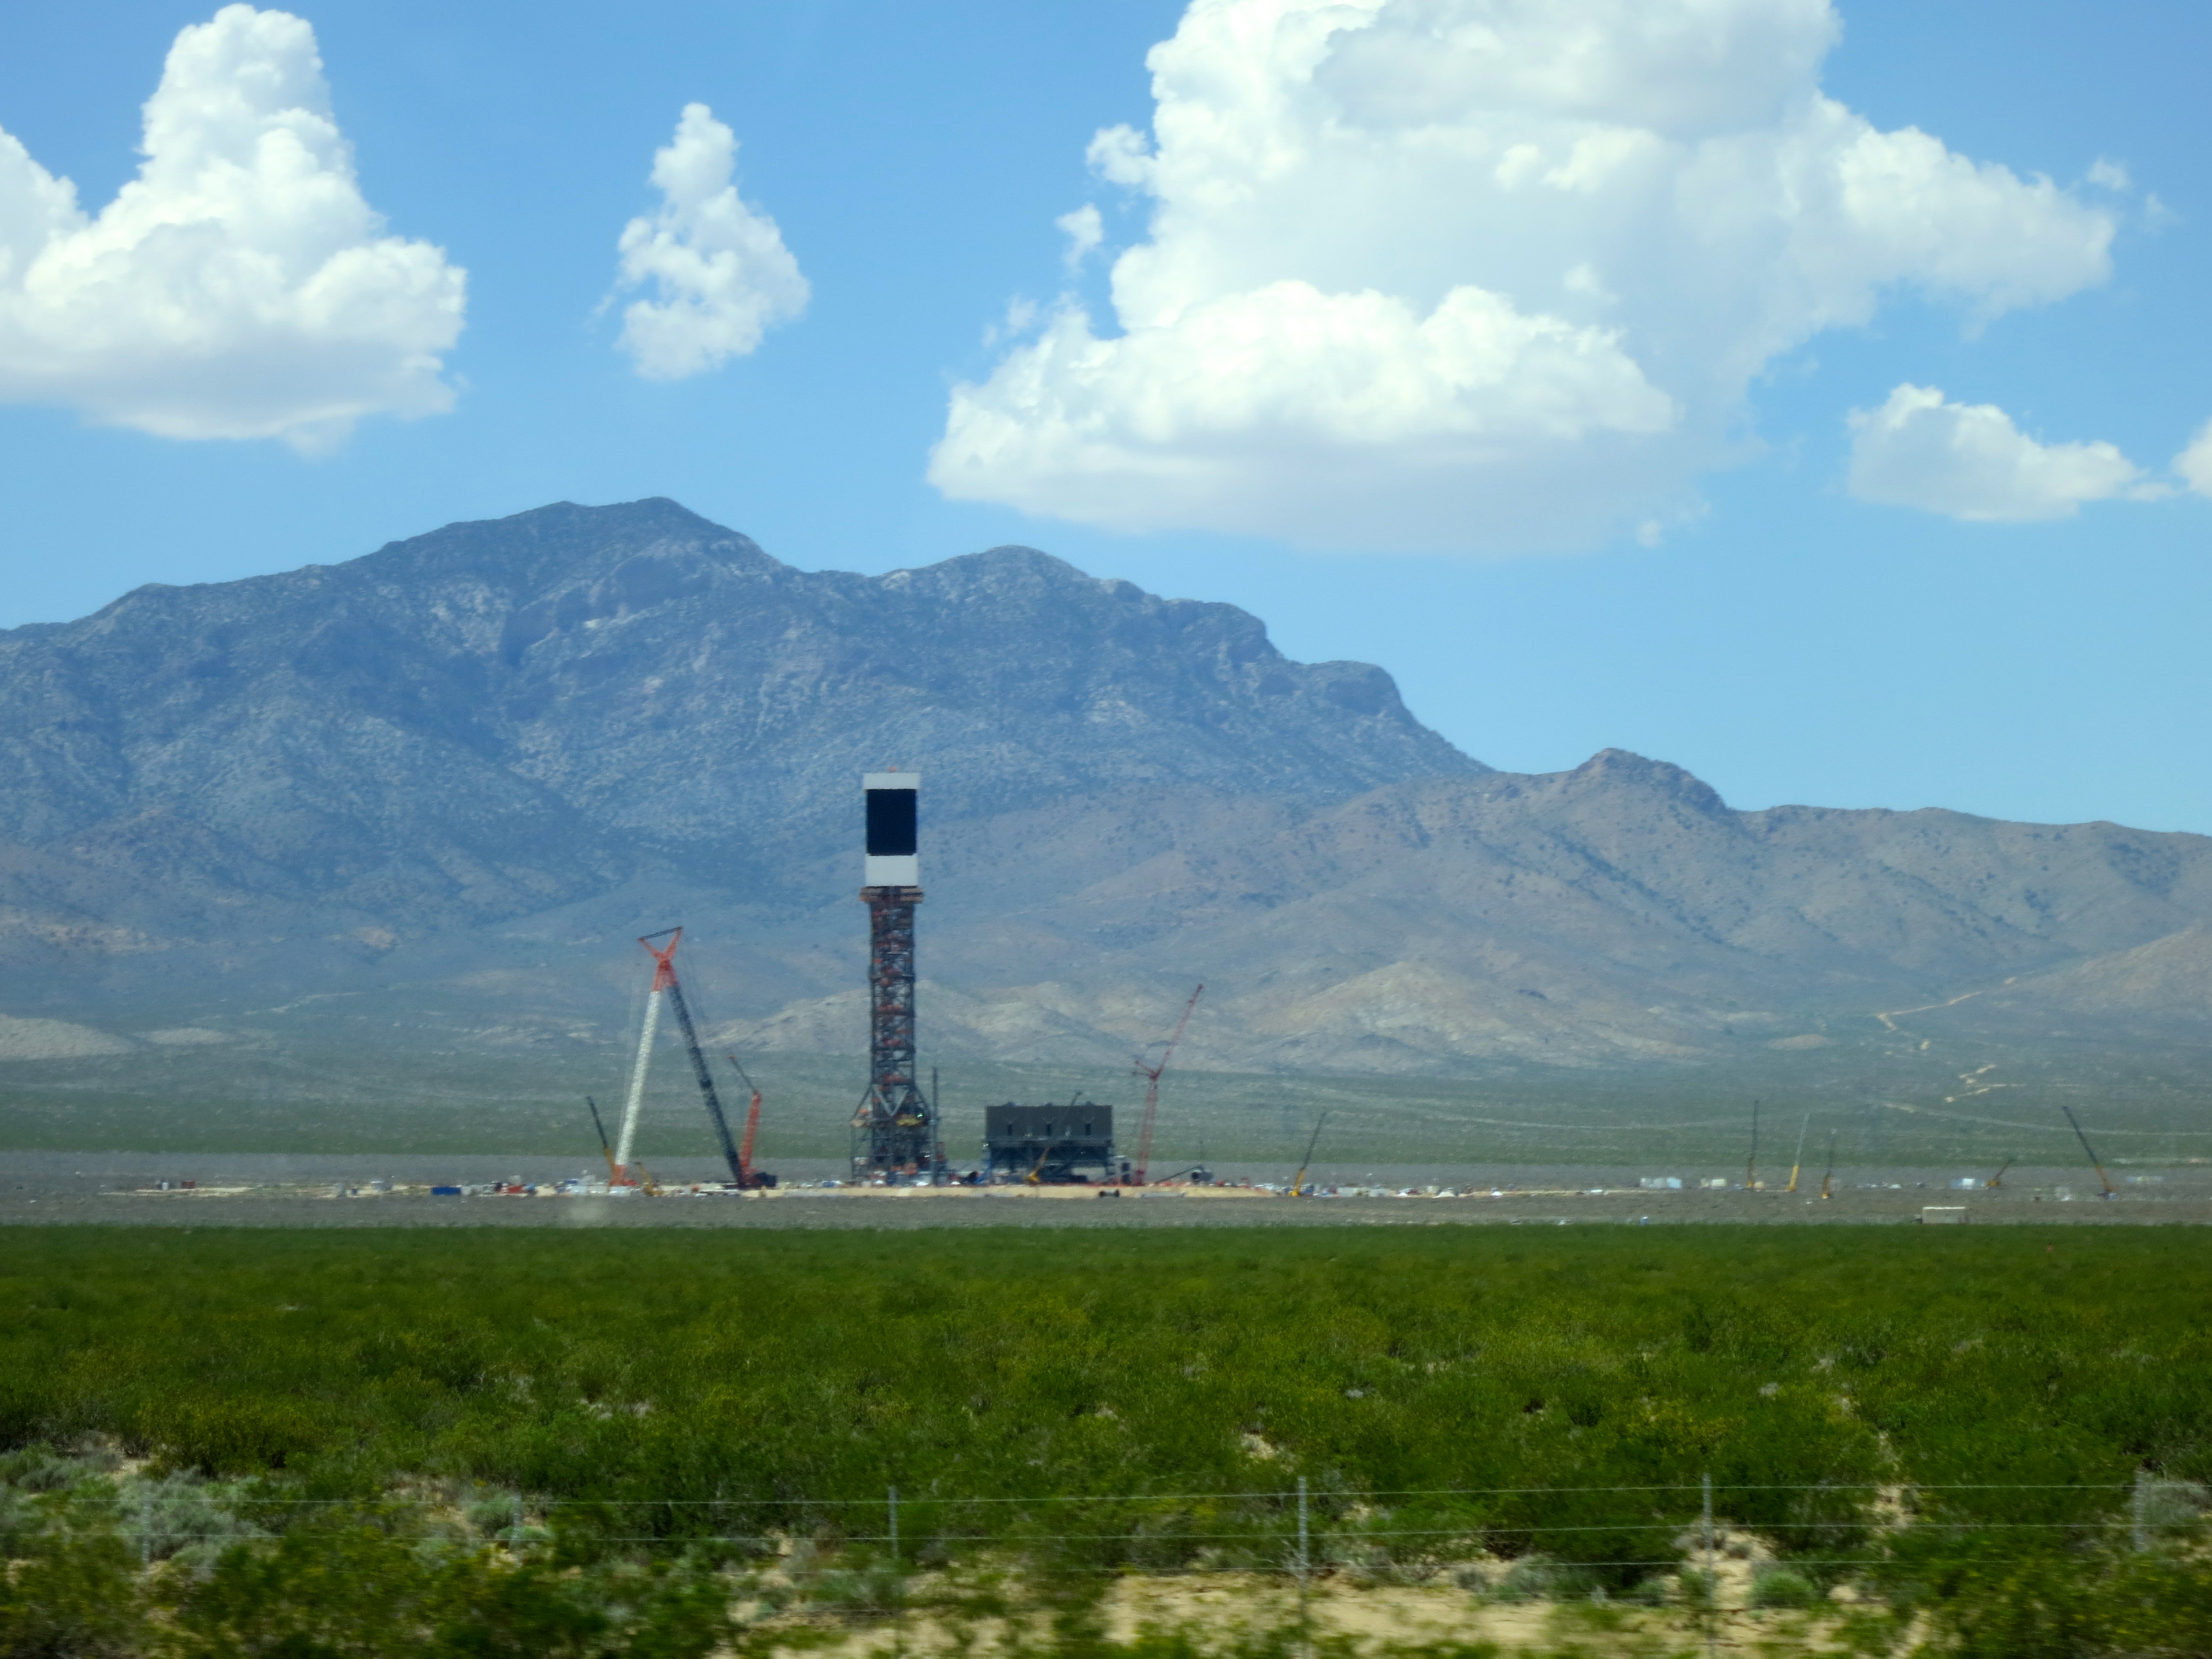 Fileone Of The Three Towers Ivanpah Solar Power Facility Electricity Generation System